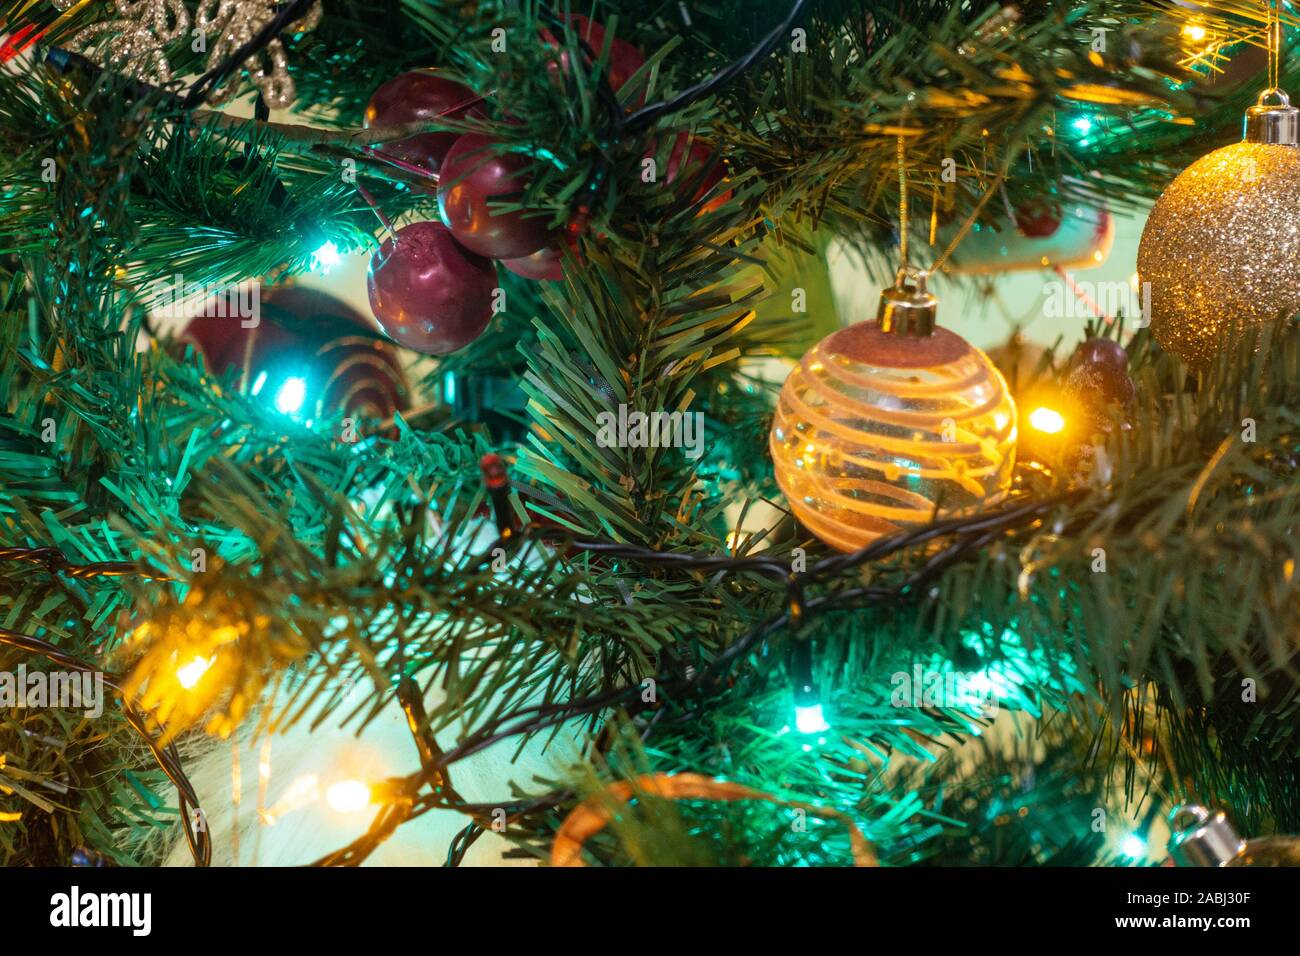 colourful-fairy-lights-and-baubles-decorate-a-christmas-tree-2ABJ30F.jpg